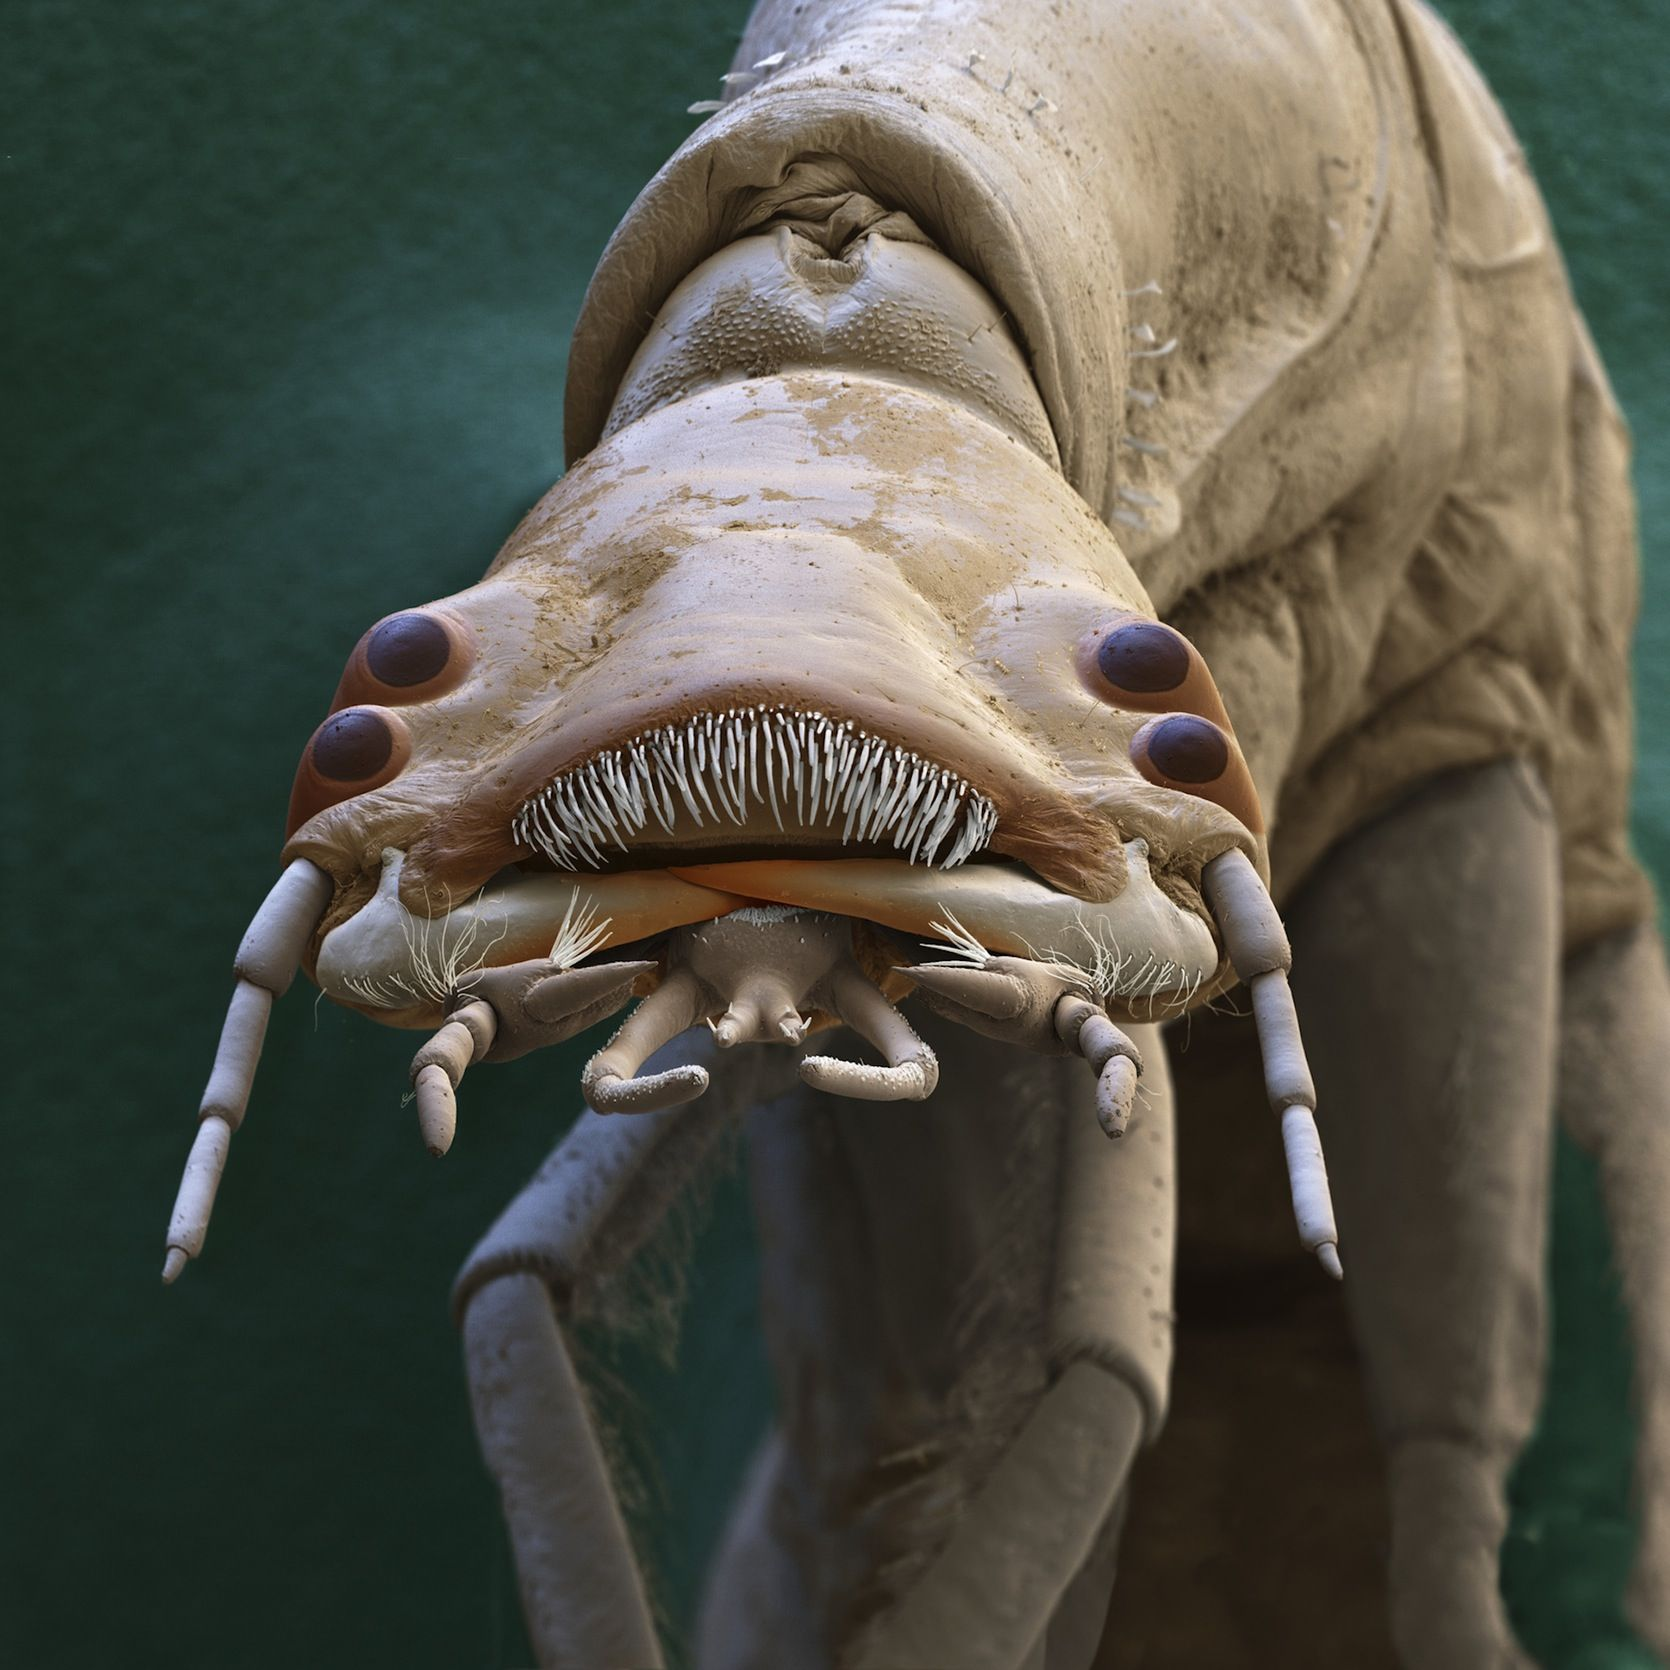 Micromonsters, up close and personal Microscopic